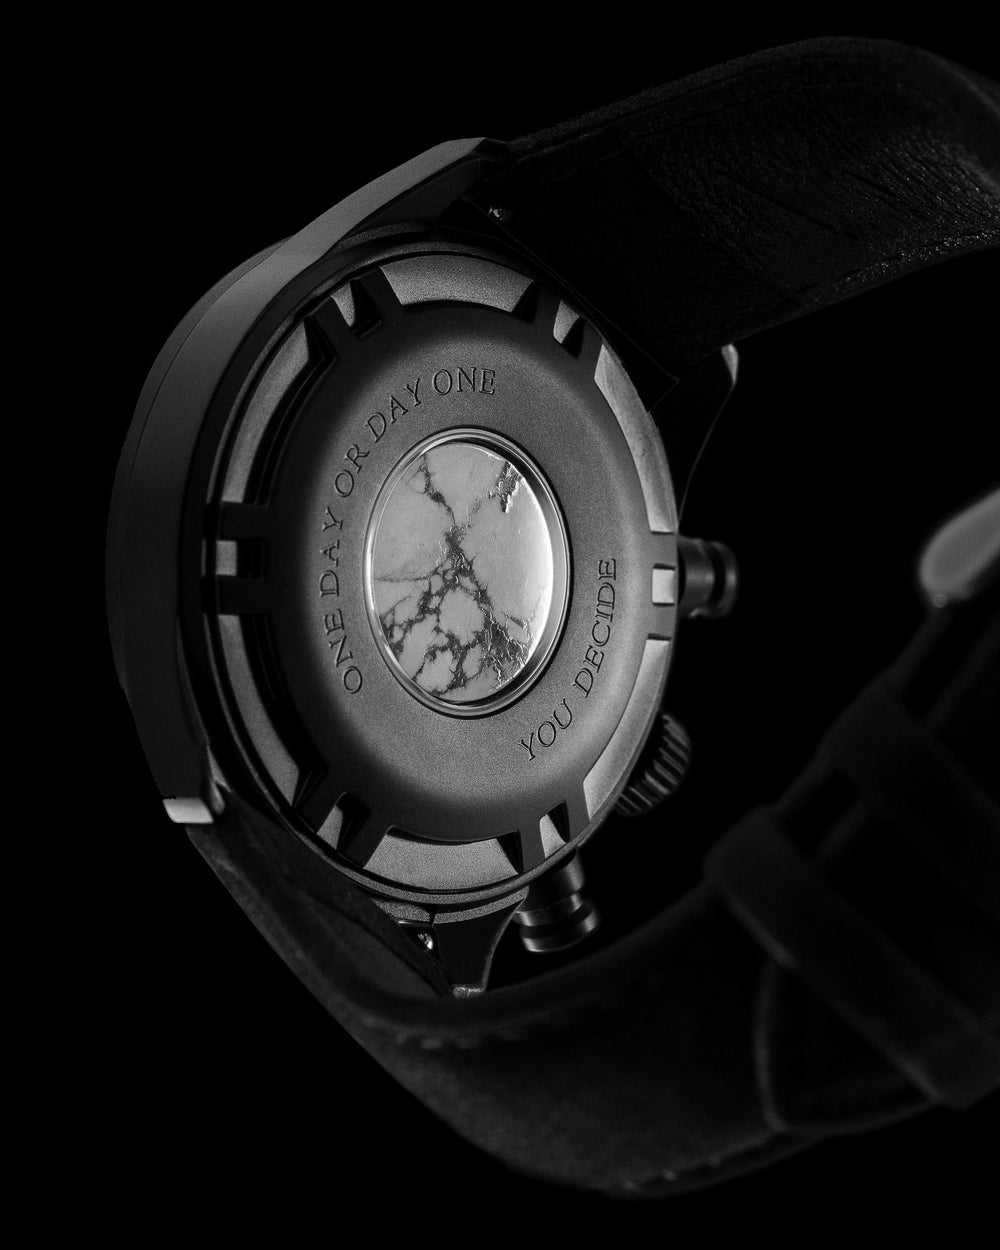 Chrono S - Day One Limited Edition